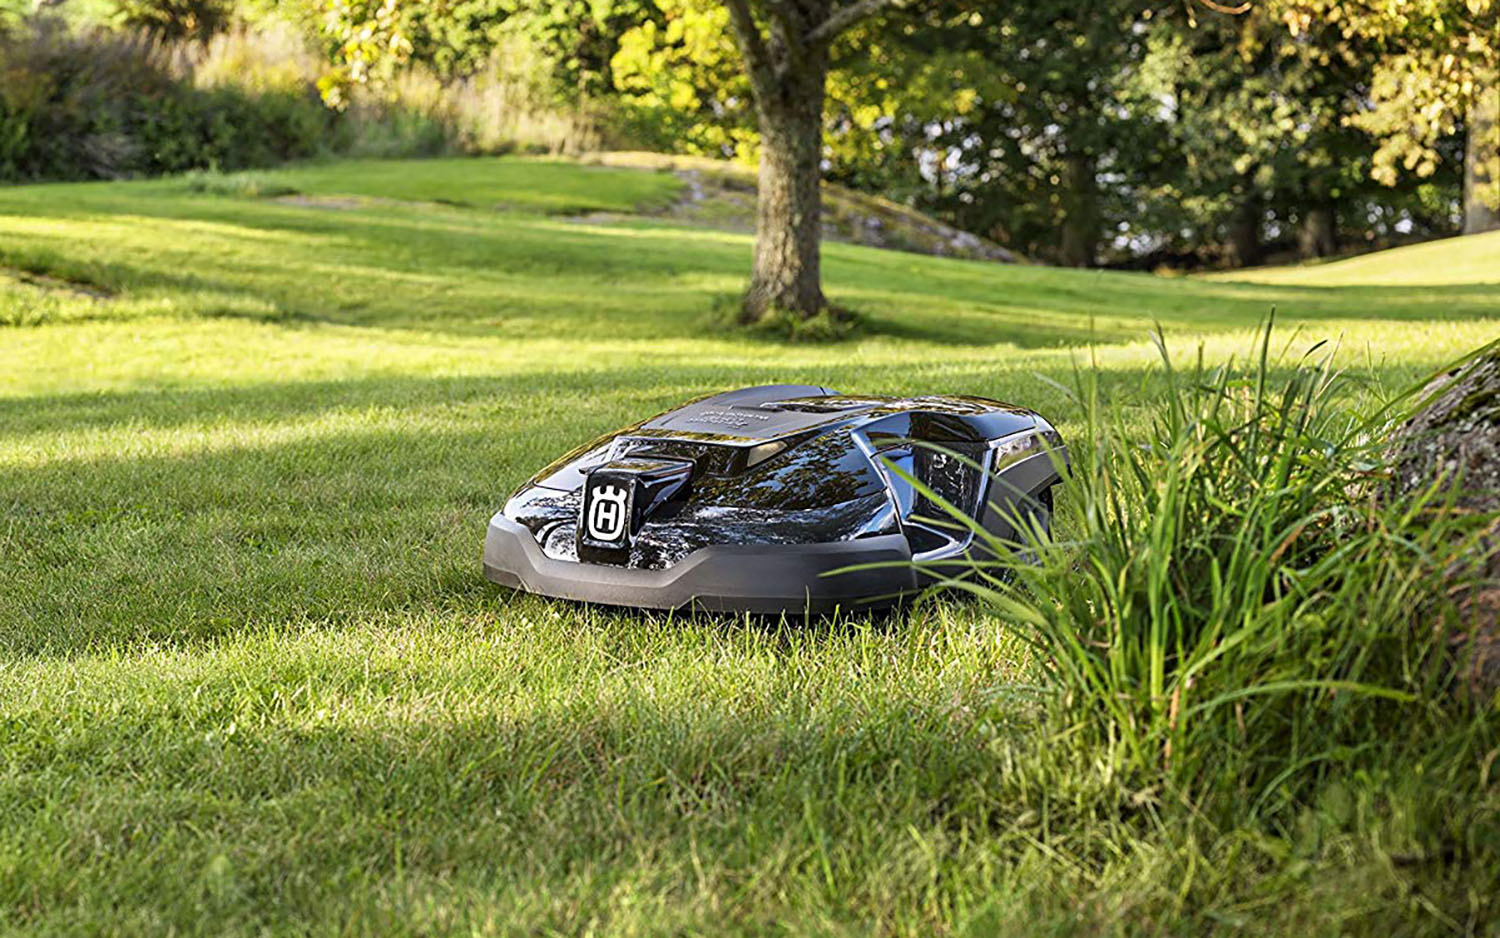 Best Robot Lawn Mowers 2019 - Robotic Lawn Mower Reviews | Top Ten